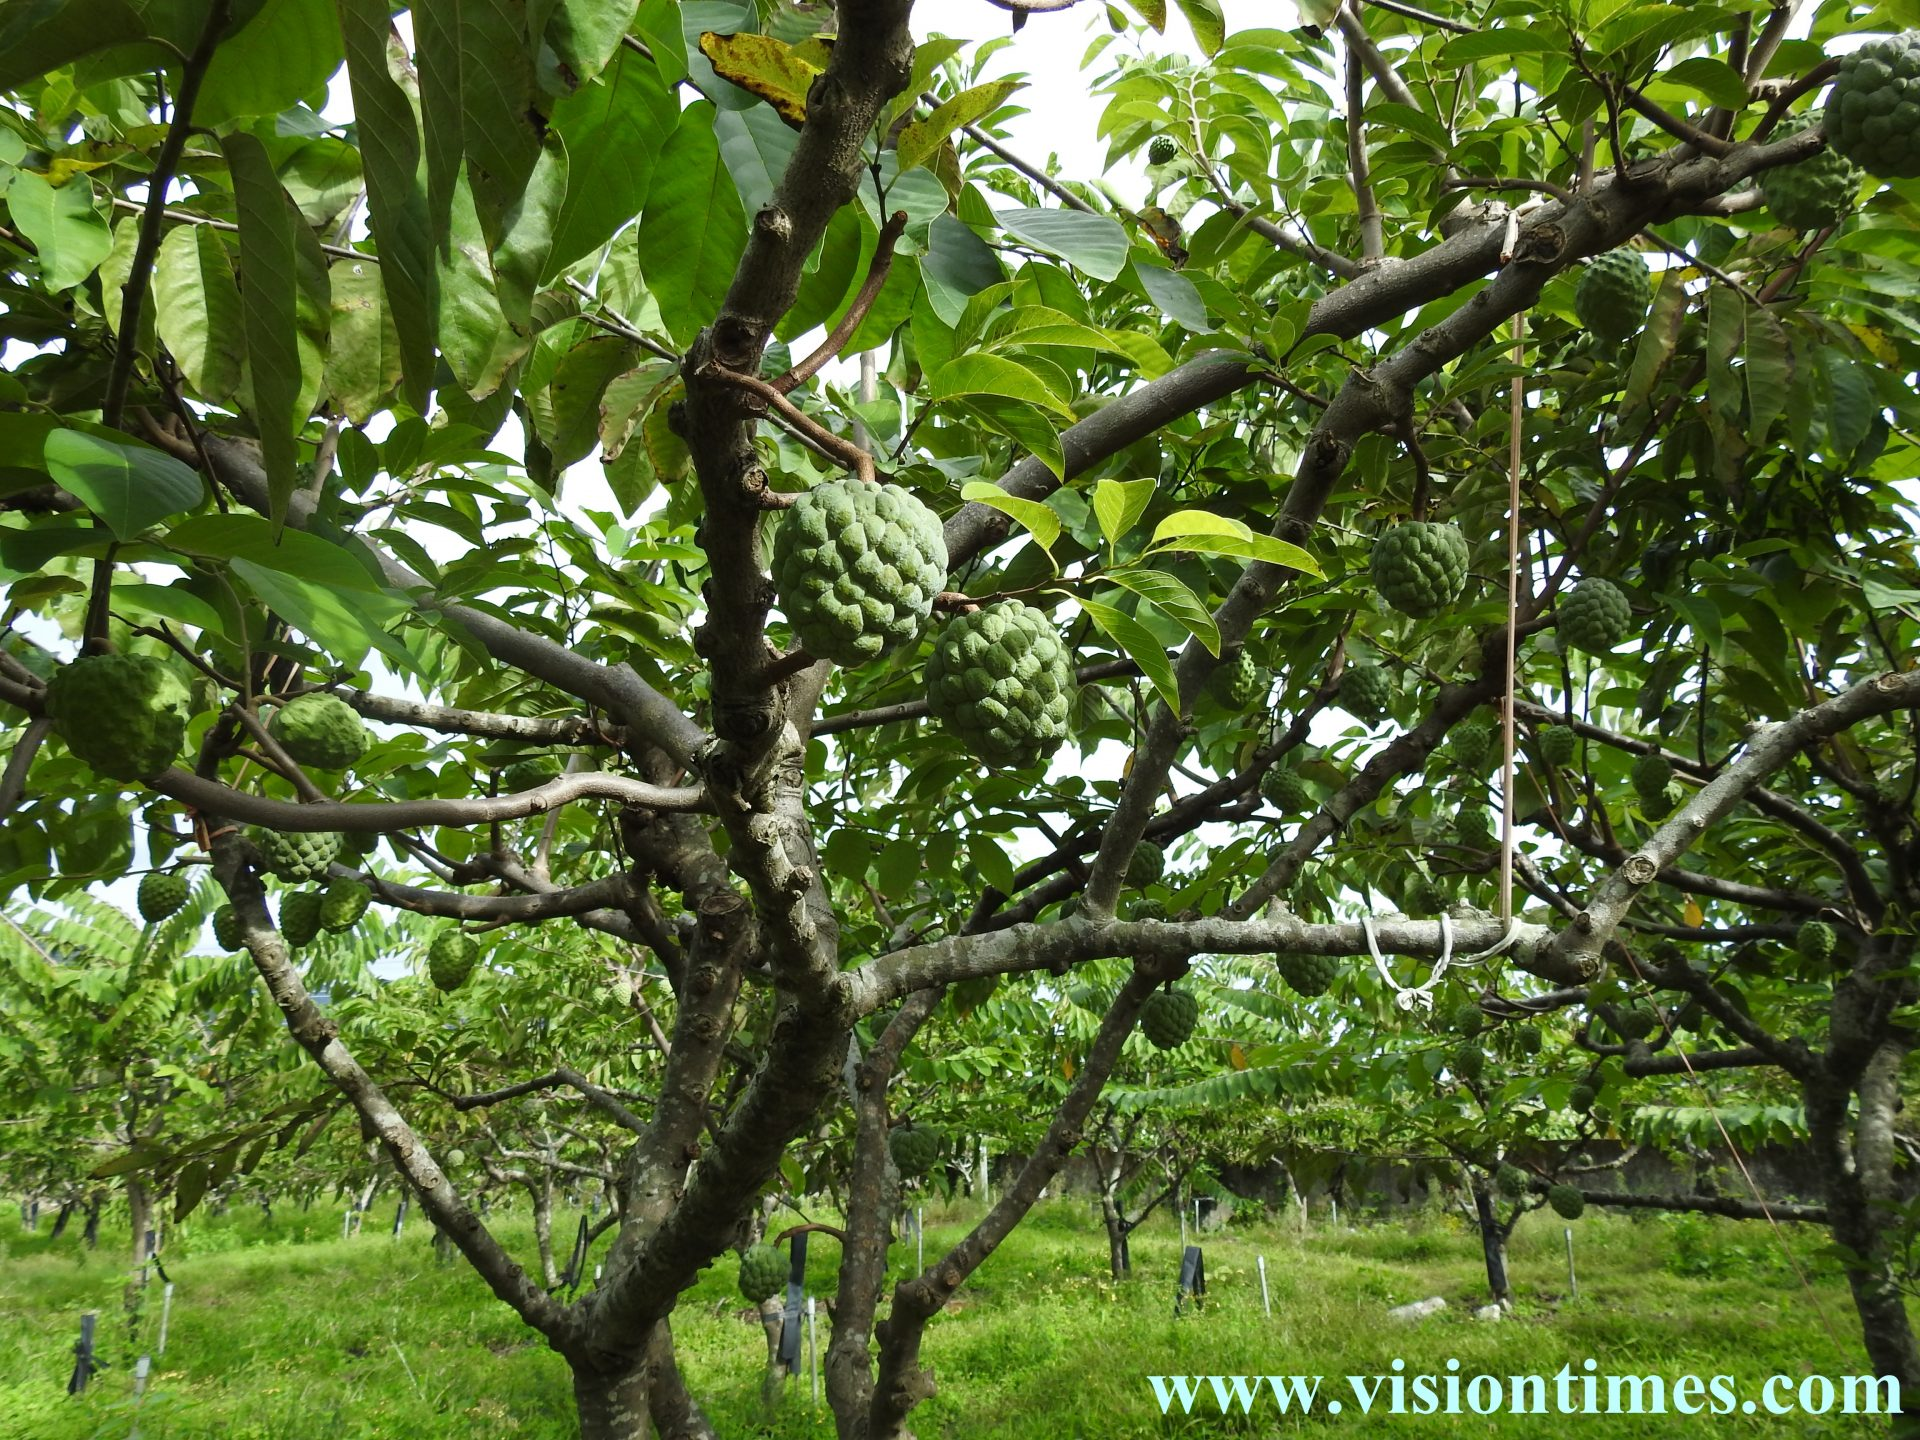 Taiwan is currently the largest sugar apple cultivating country in the world. (Image: Billy Shyu / Vision Times)